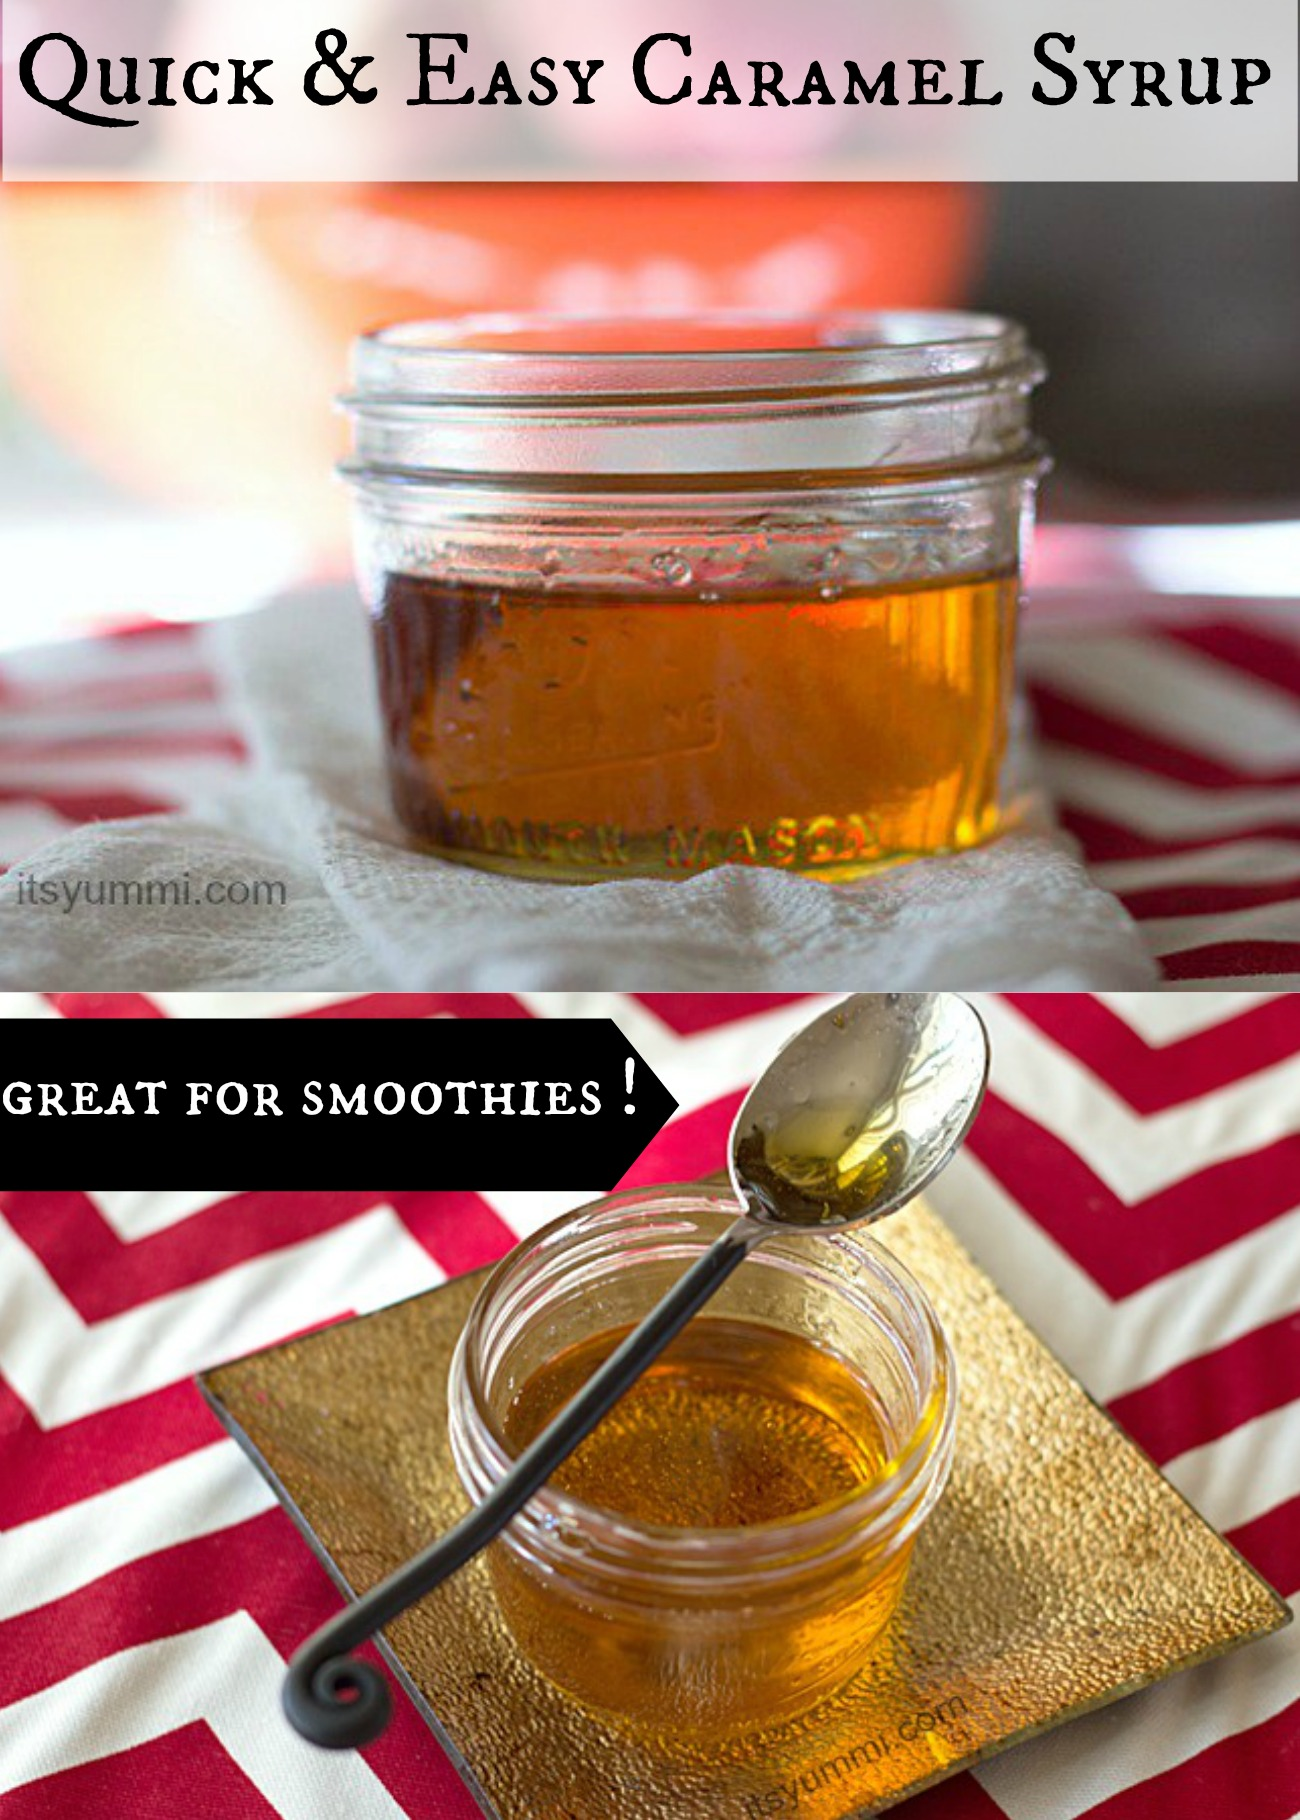 recipe: how to make caramel syrup [1]